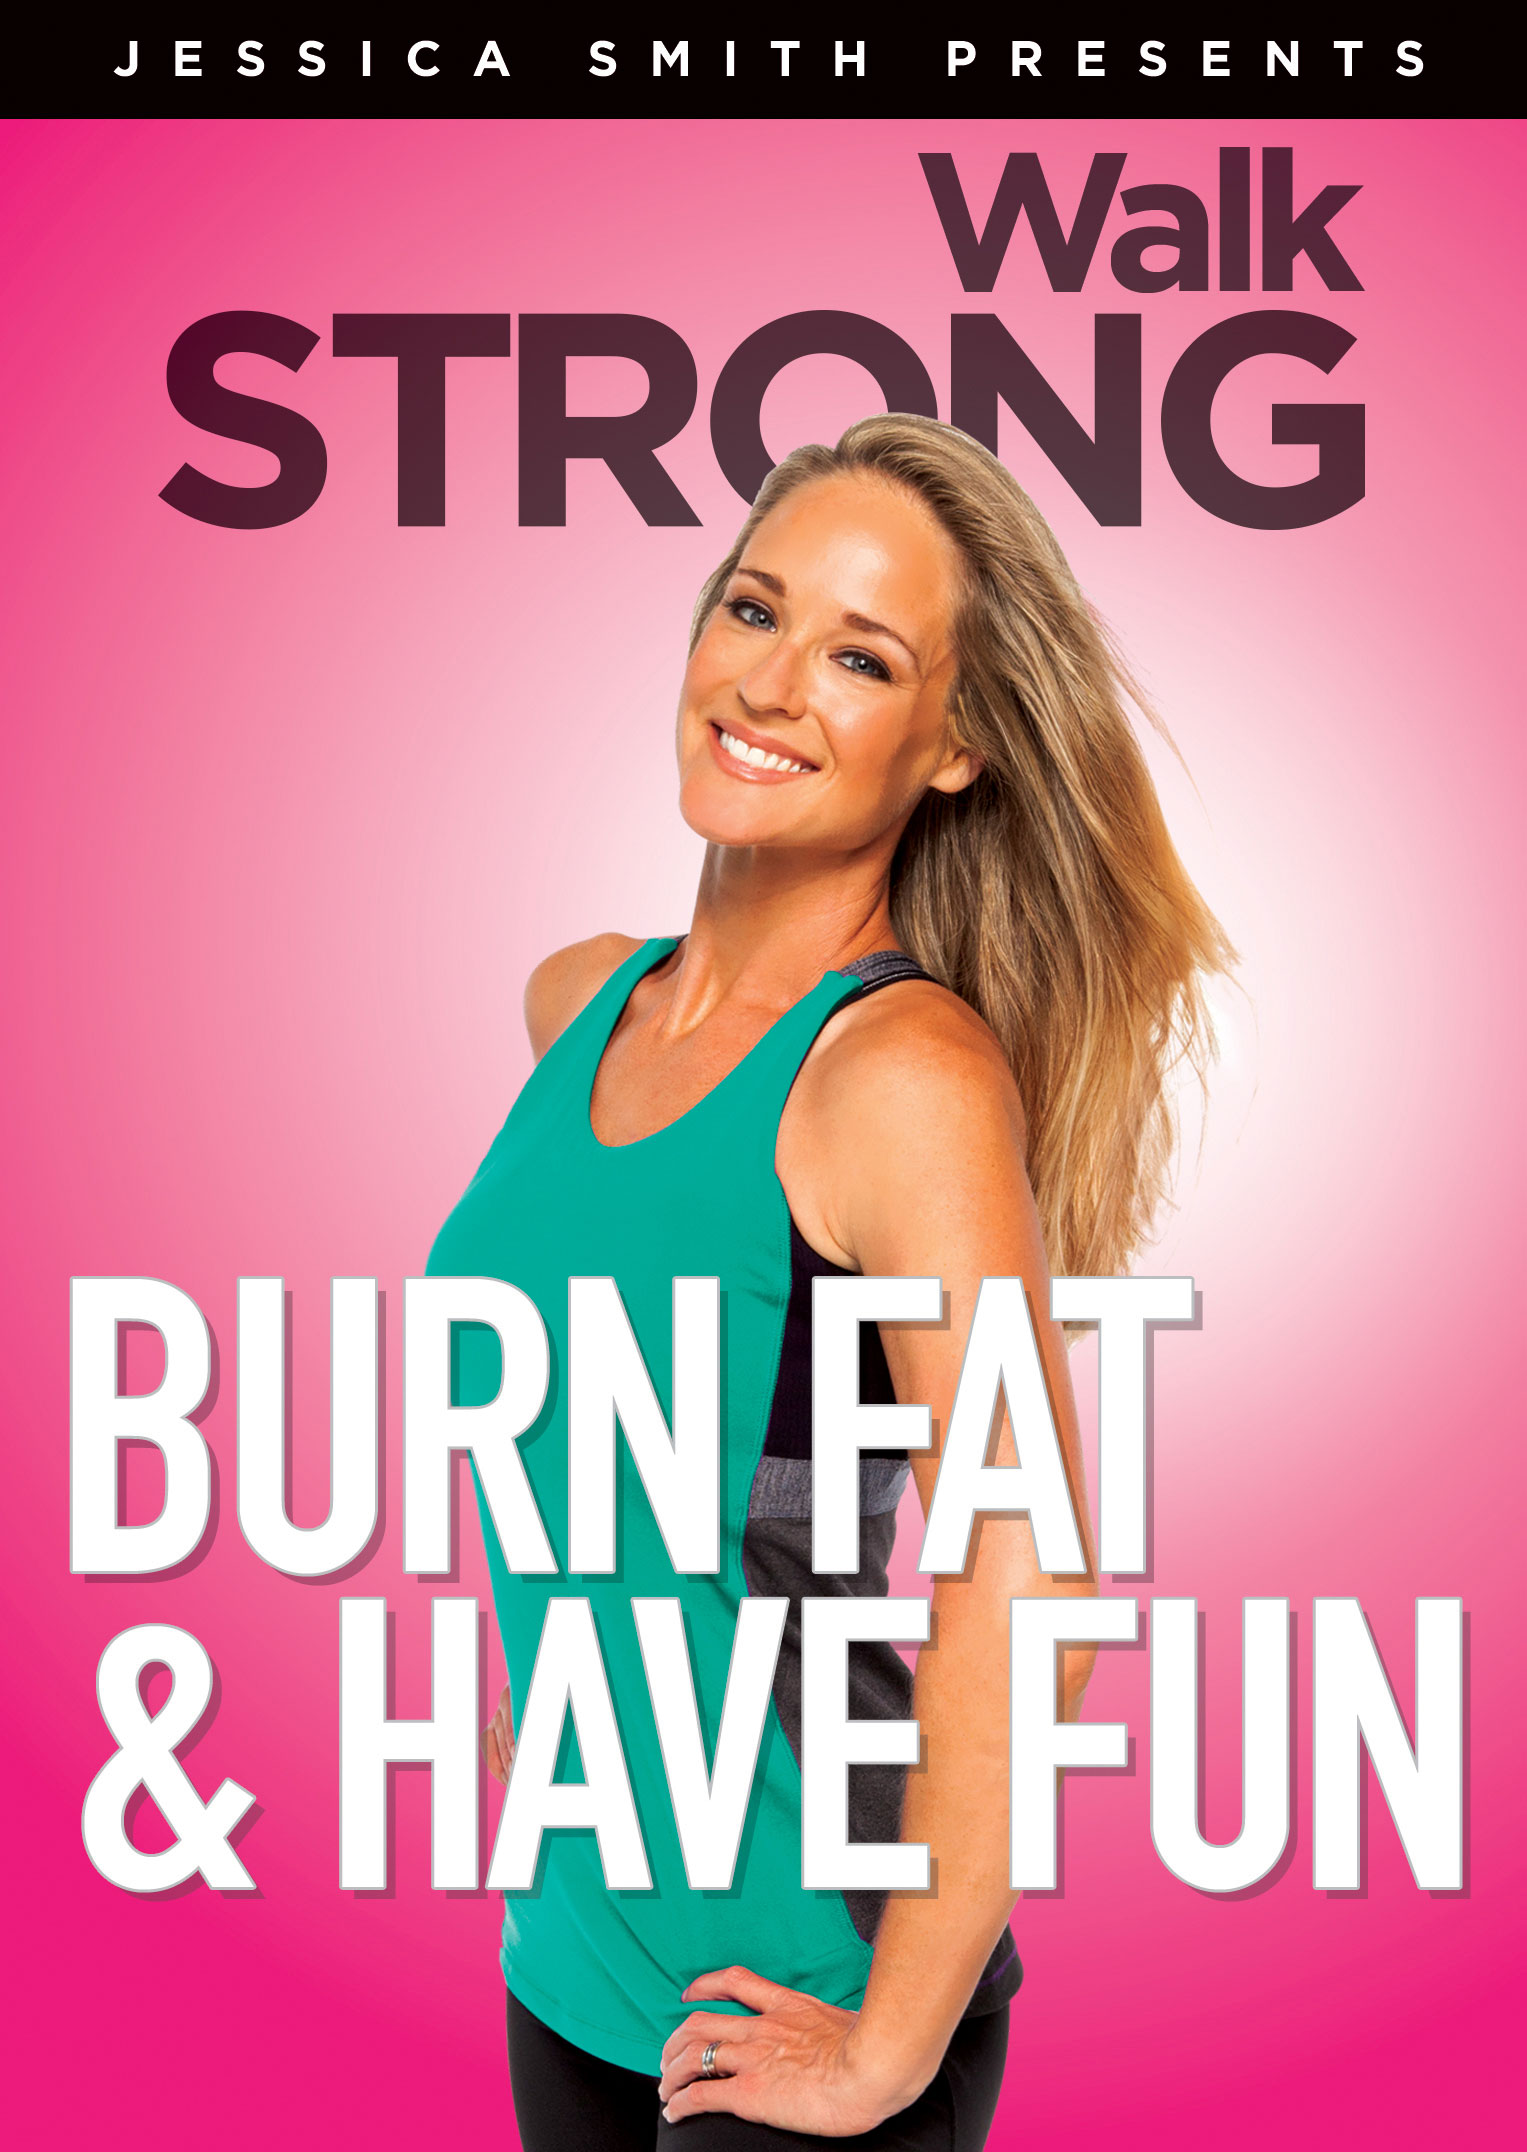 Jessica Smith - Walk Strong - Burn Fat & Have Fun